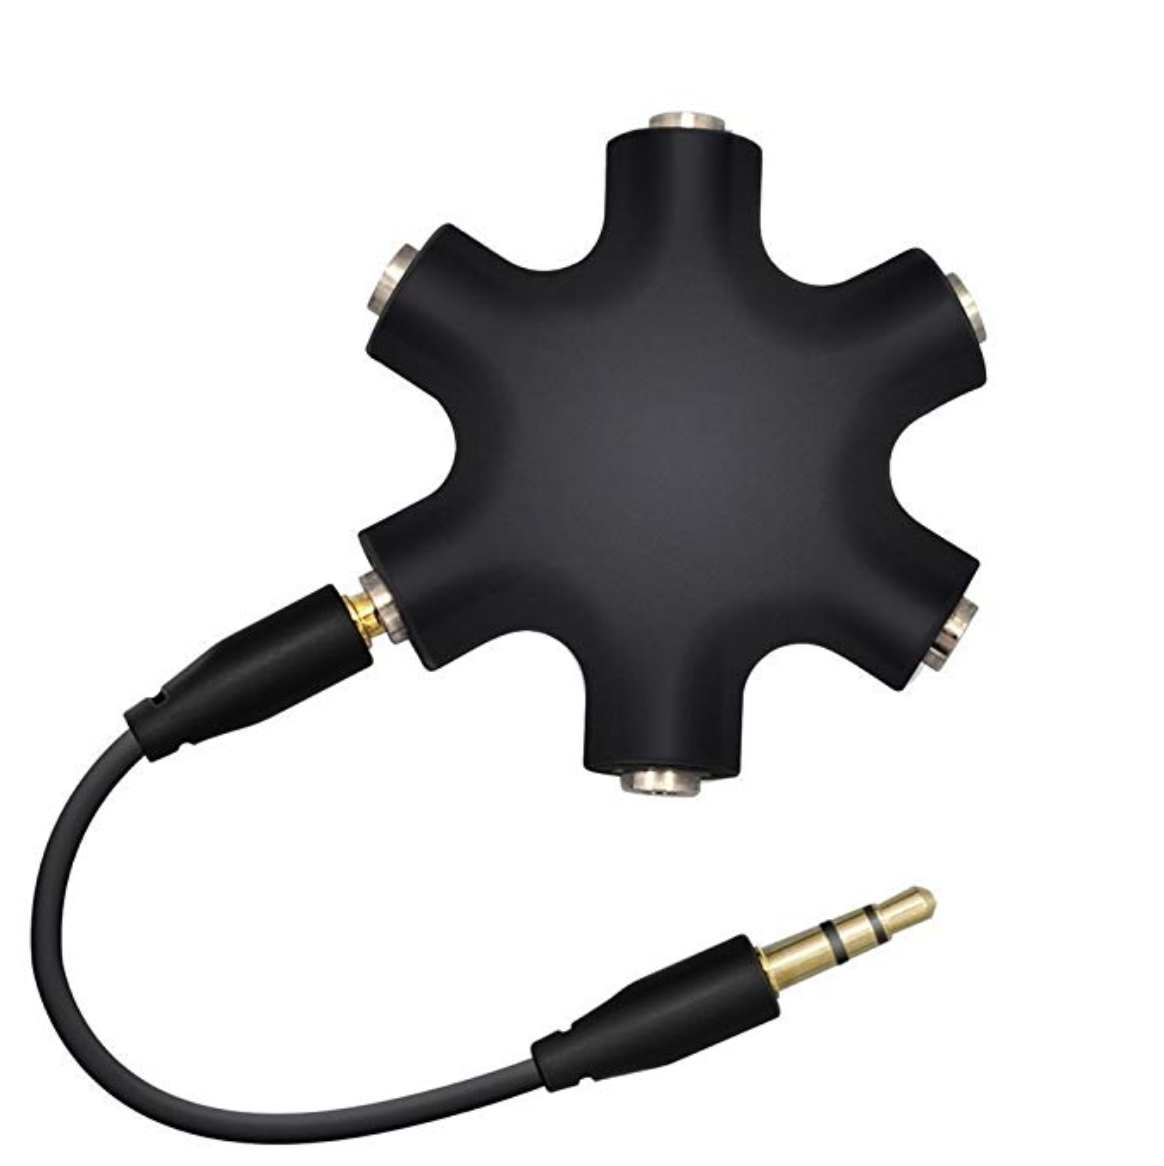 Universal Headphone Splitter.png